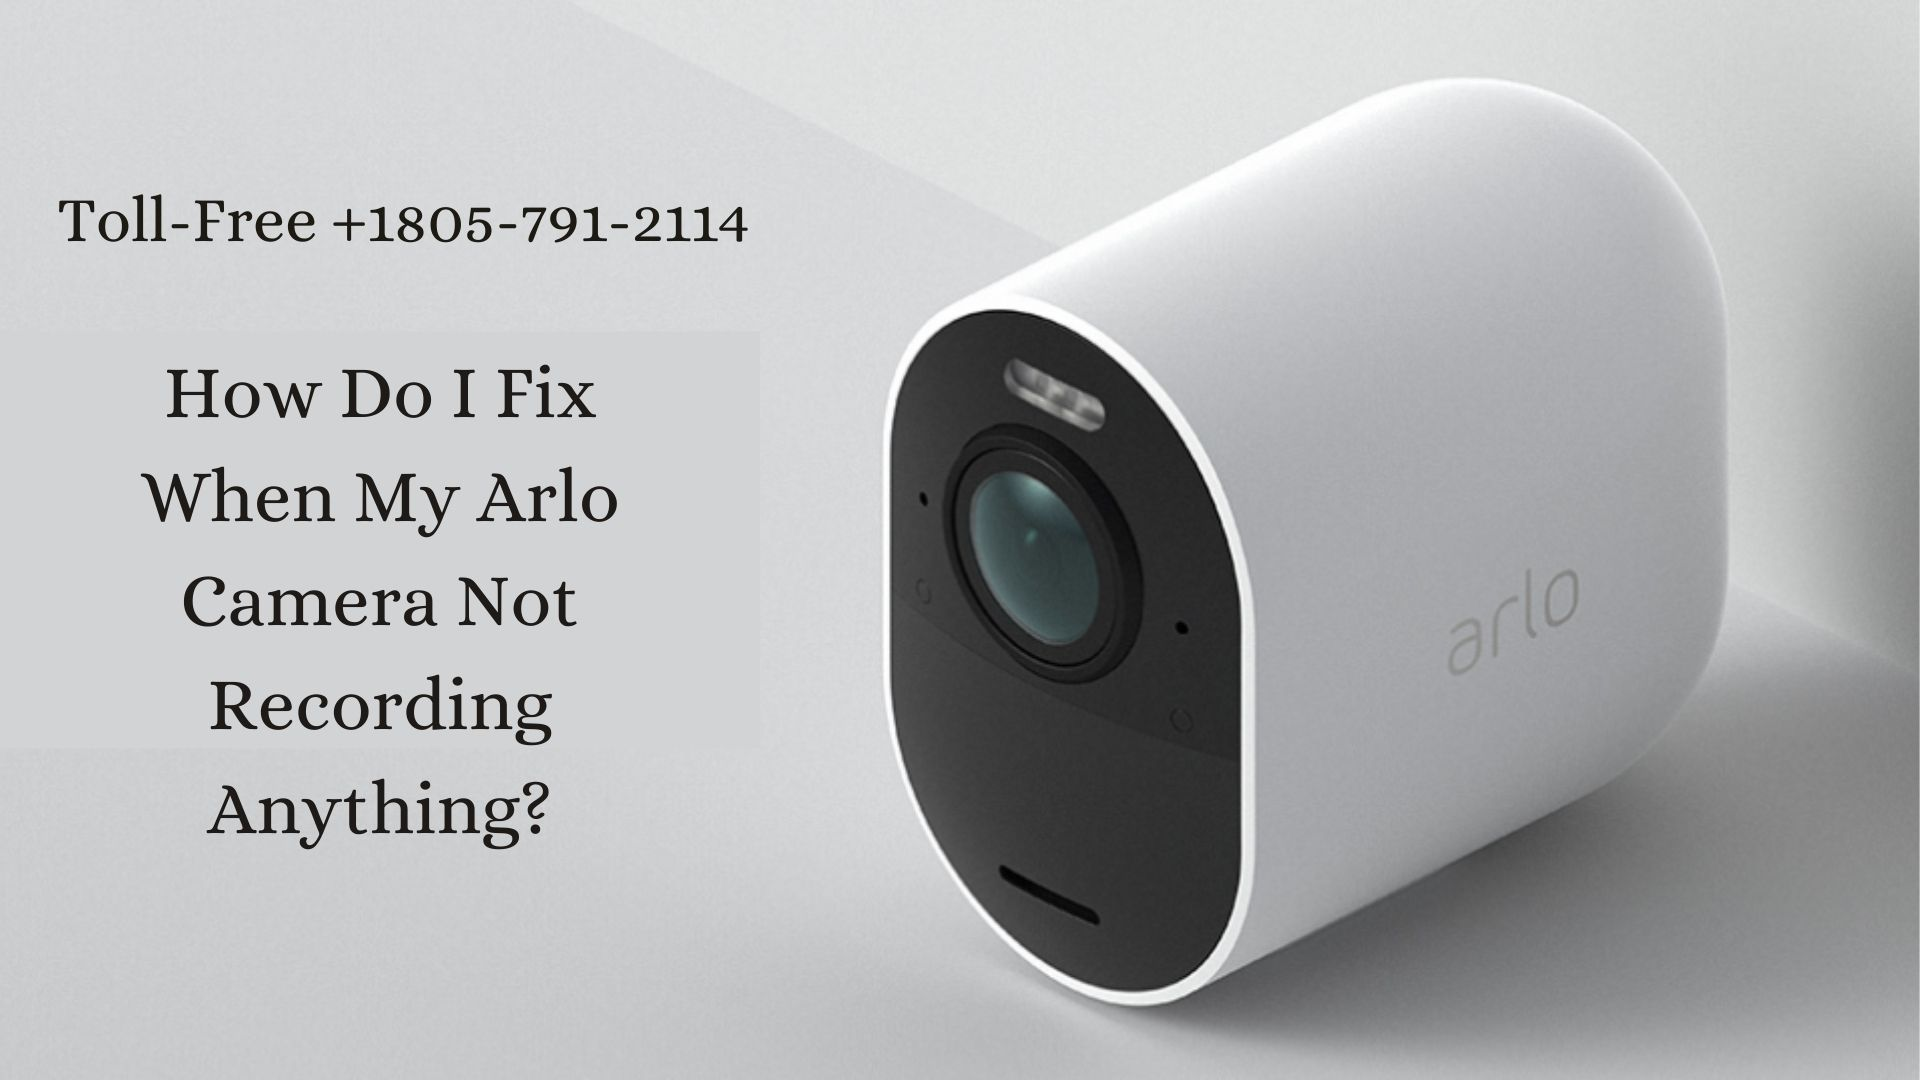 How Do I Fix When My Arlo Camera Not Recording Anything?